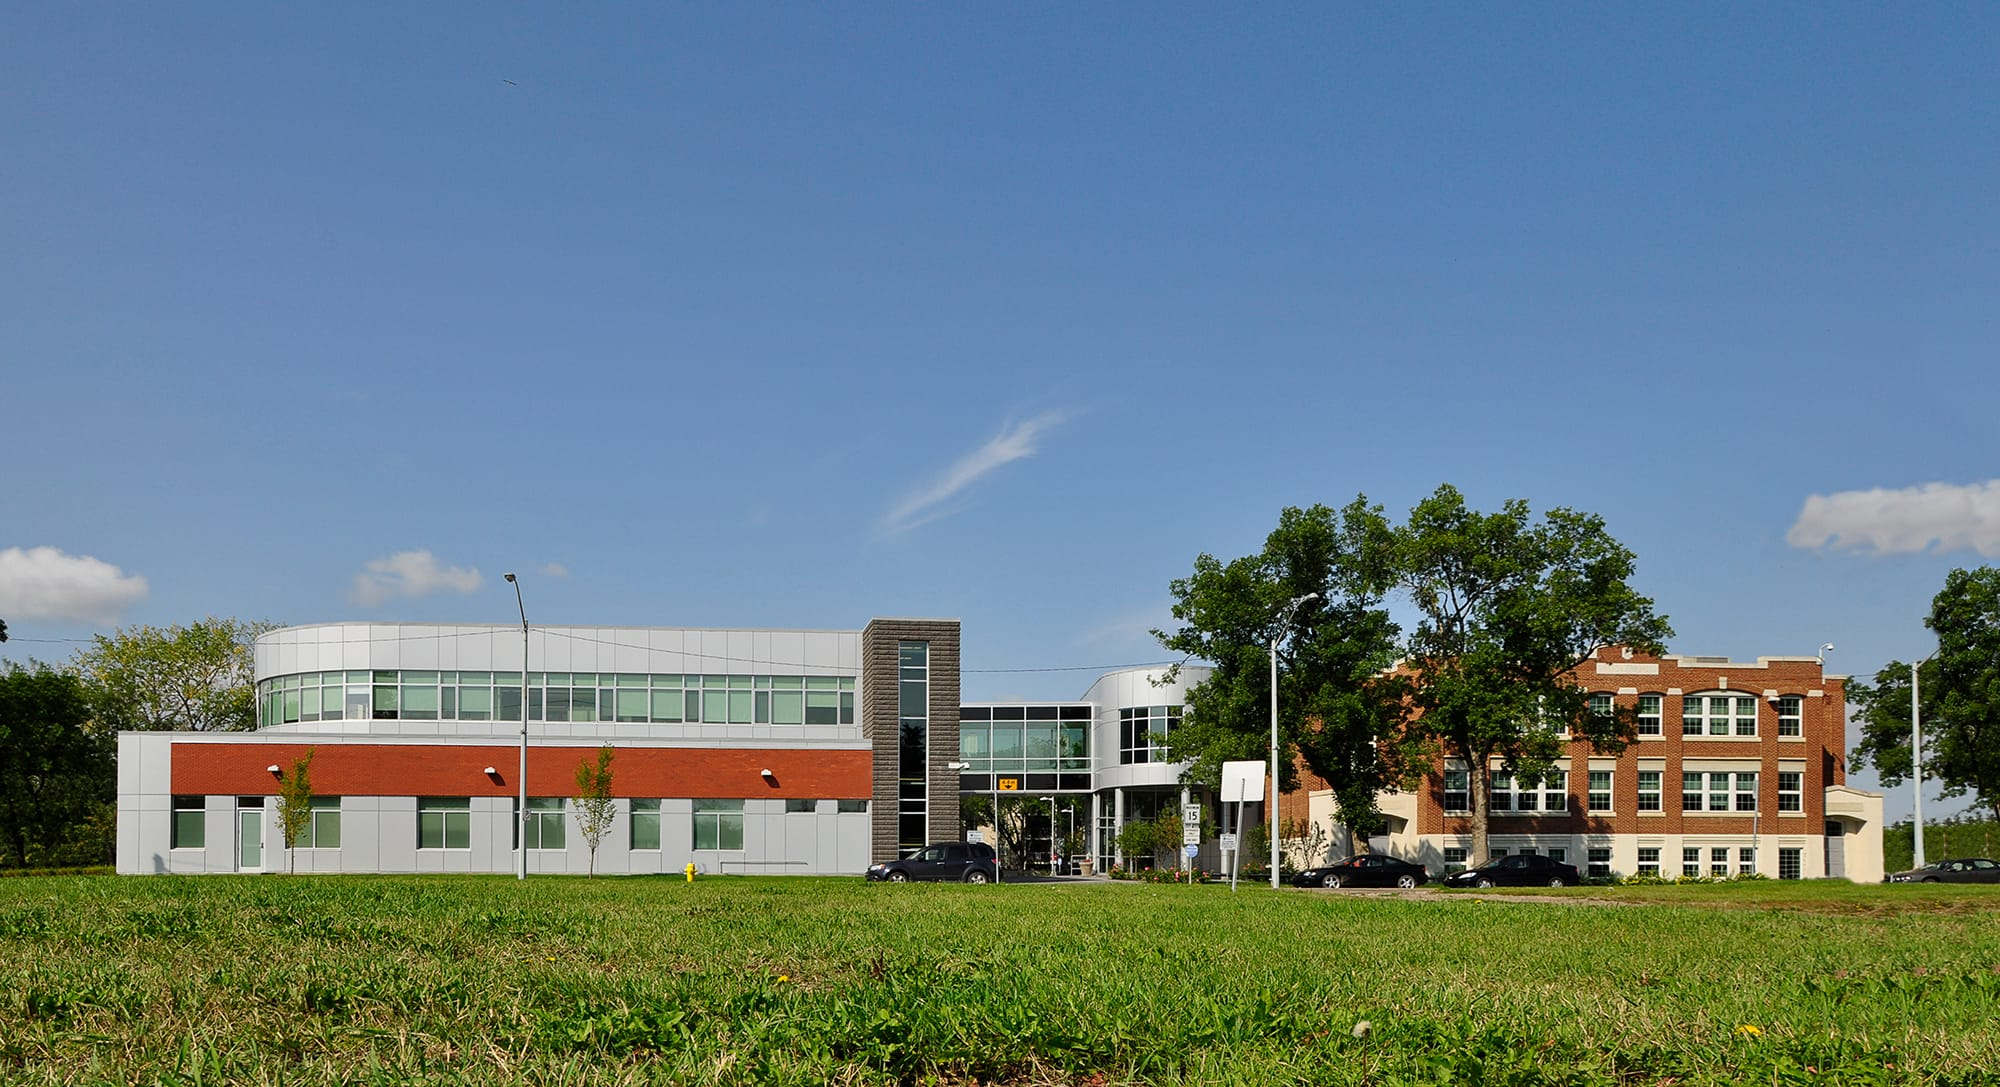 East Edmonton Health Care Centre exterior from across the lawn